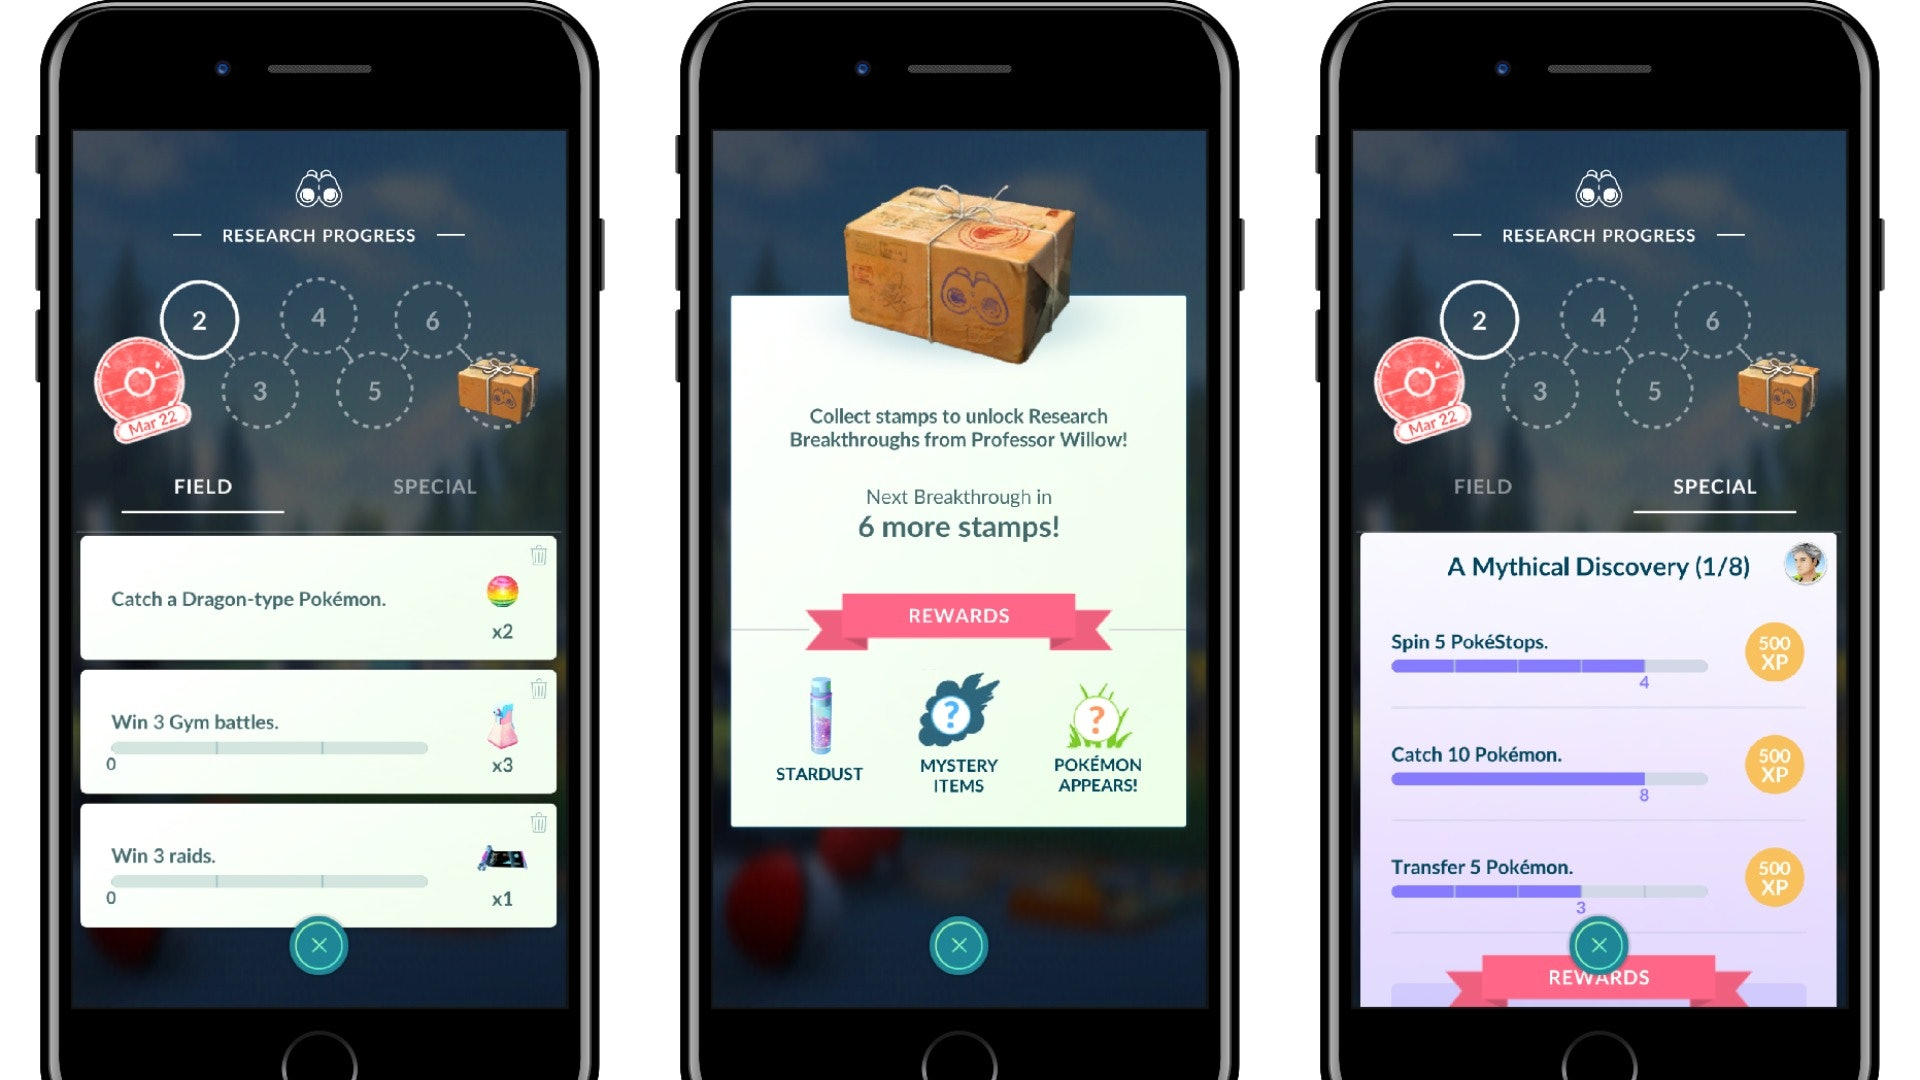 A look at some examples of how Research functions in 'Pokémon GO'.